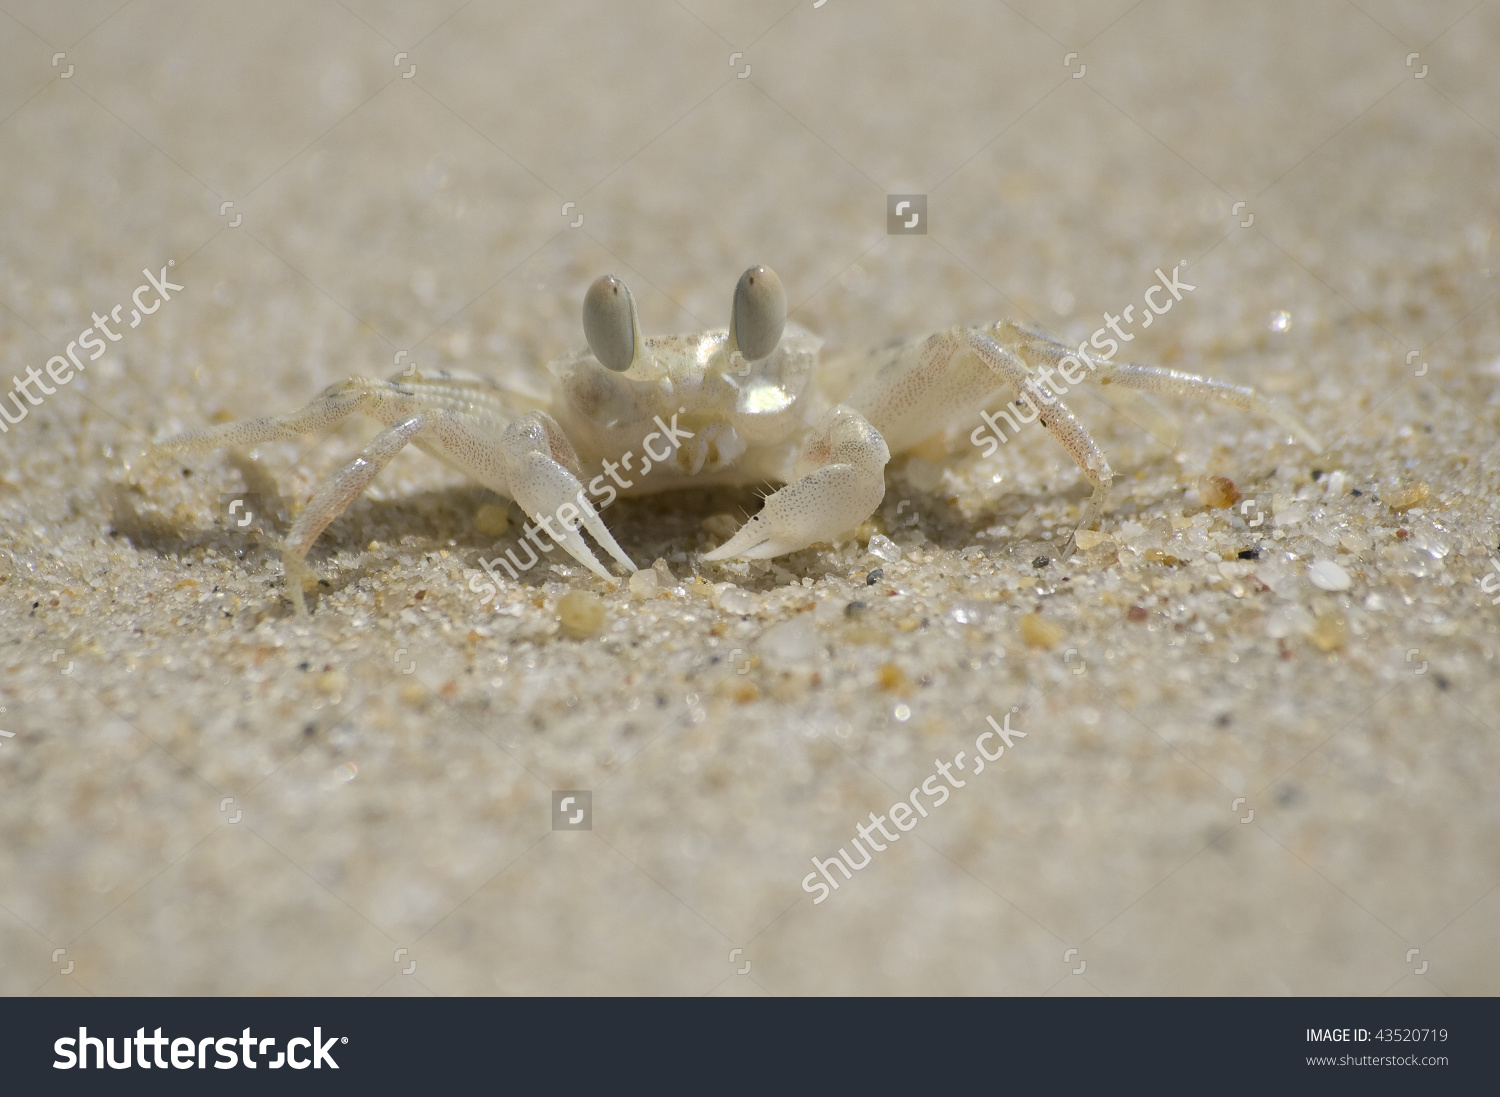 Tiny Ghost Crab On A Sand Beach (Koh Samui, Thailand) Stock Photo.